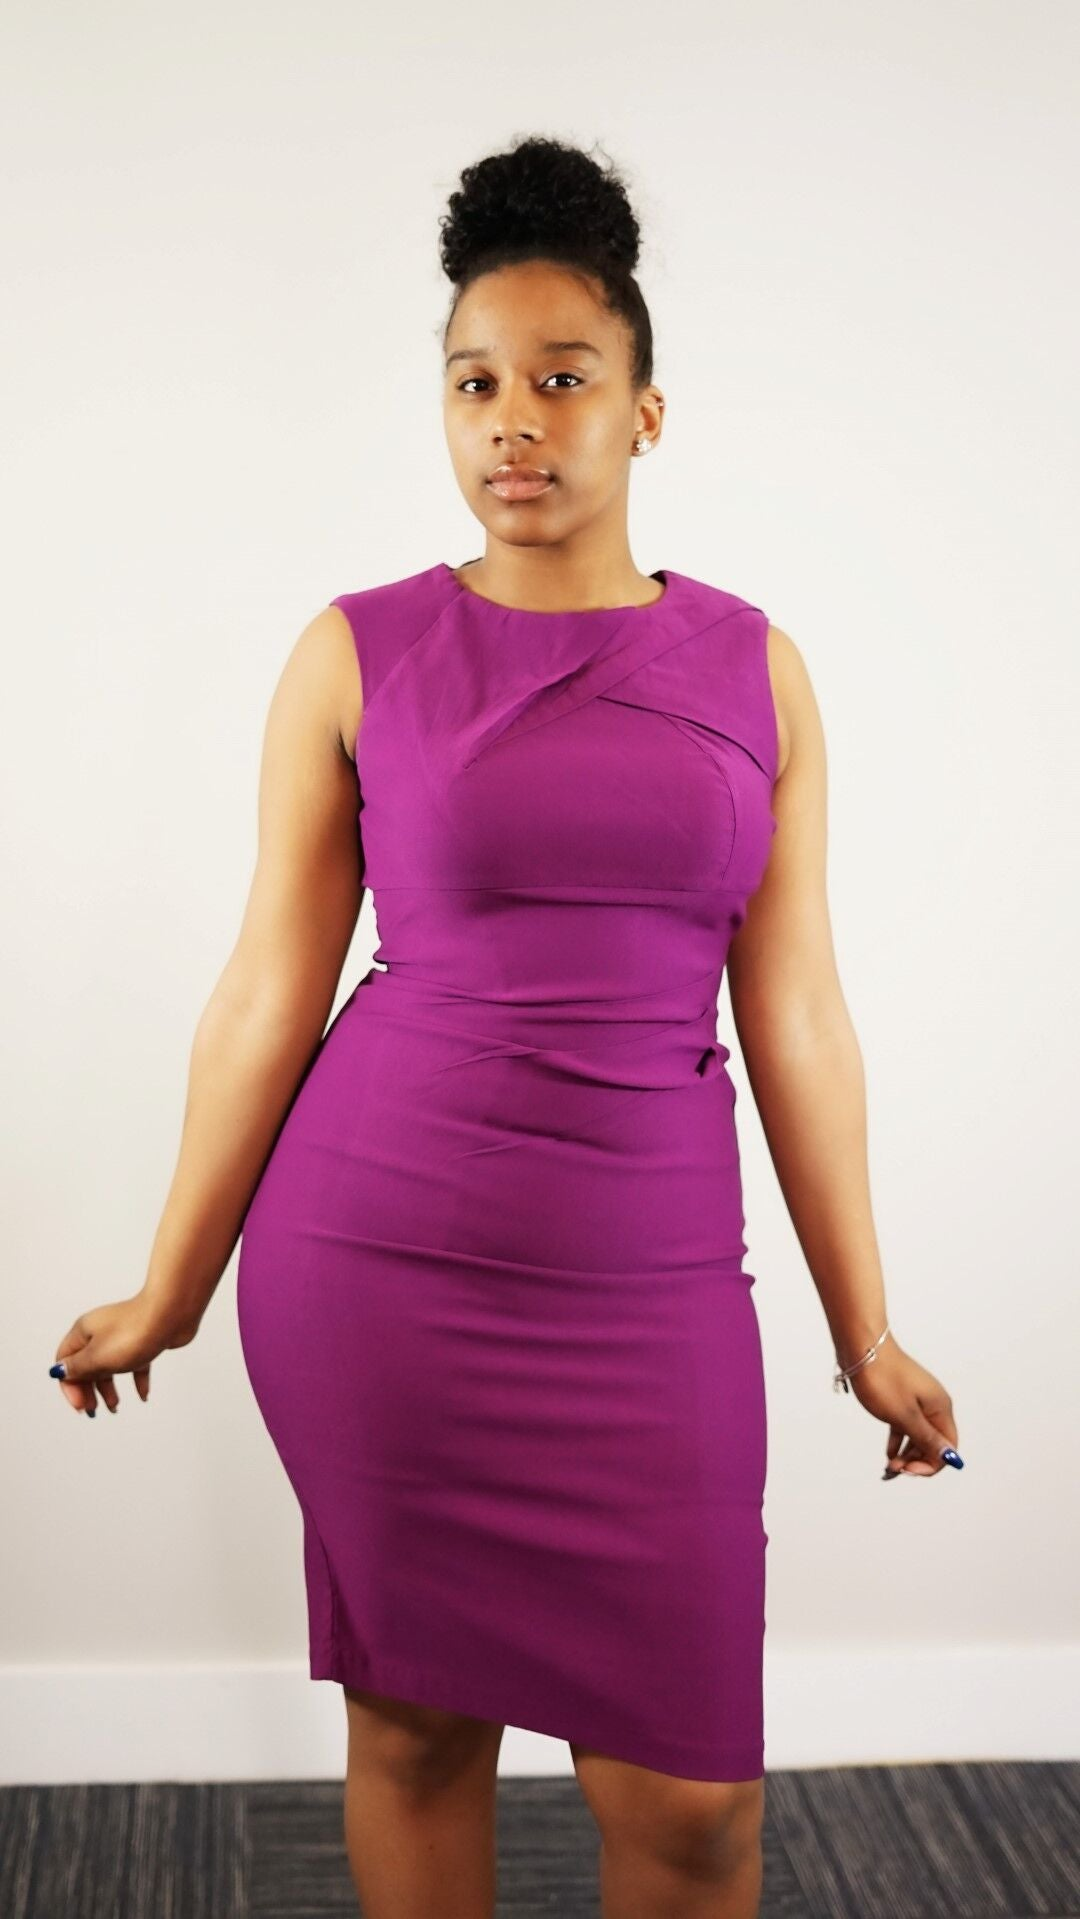 Front knee up view of plus size model in a purple Pleated Super Stretch Pencil Dress